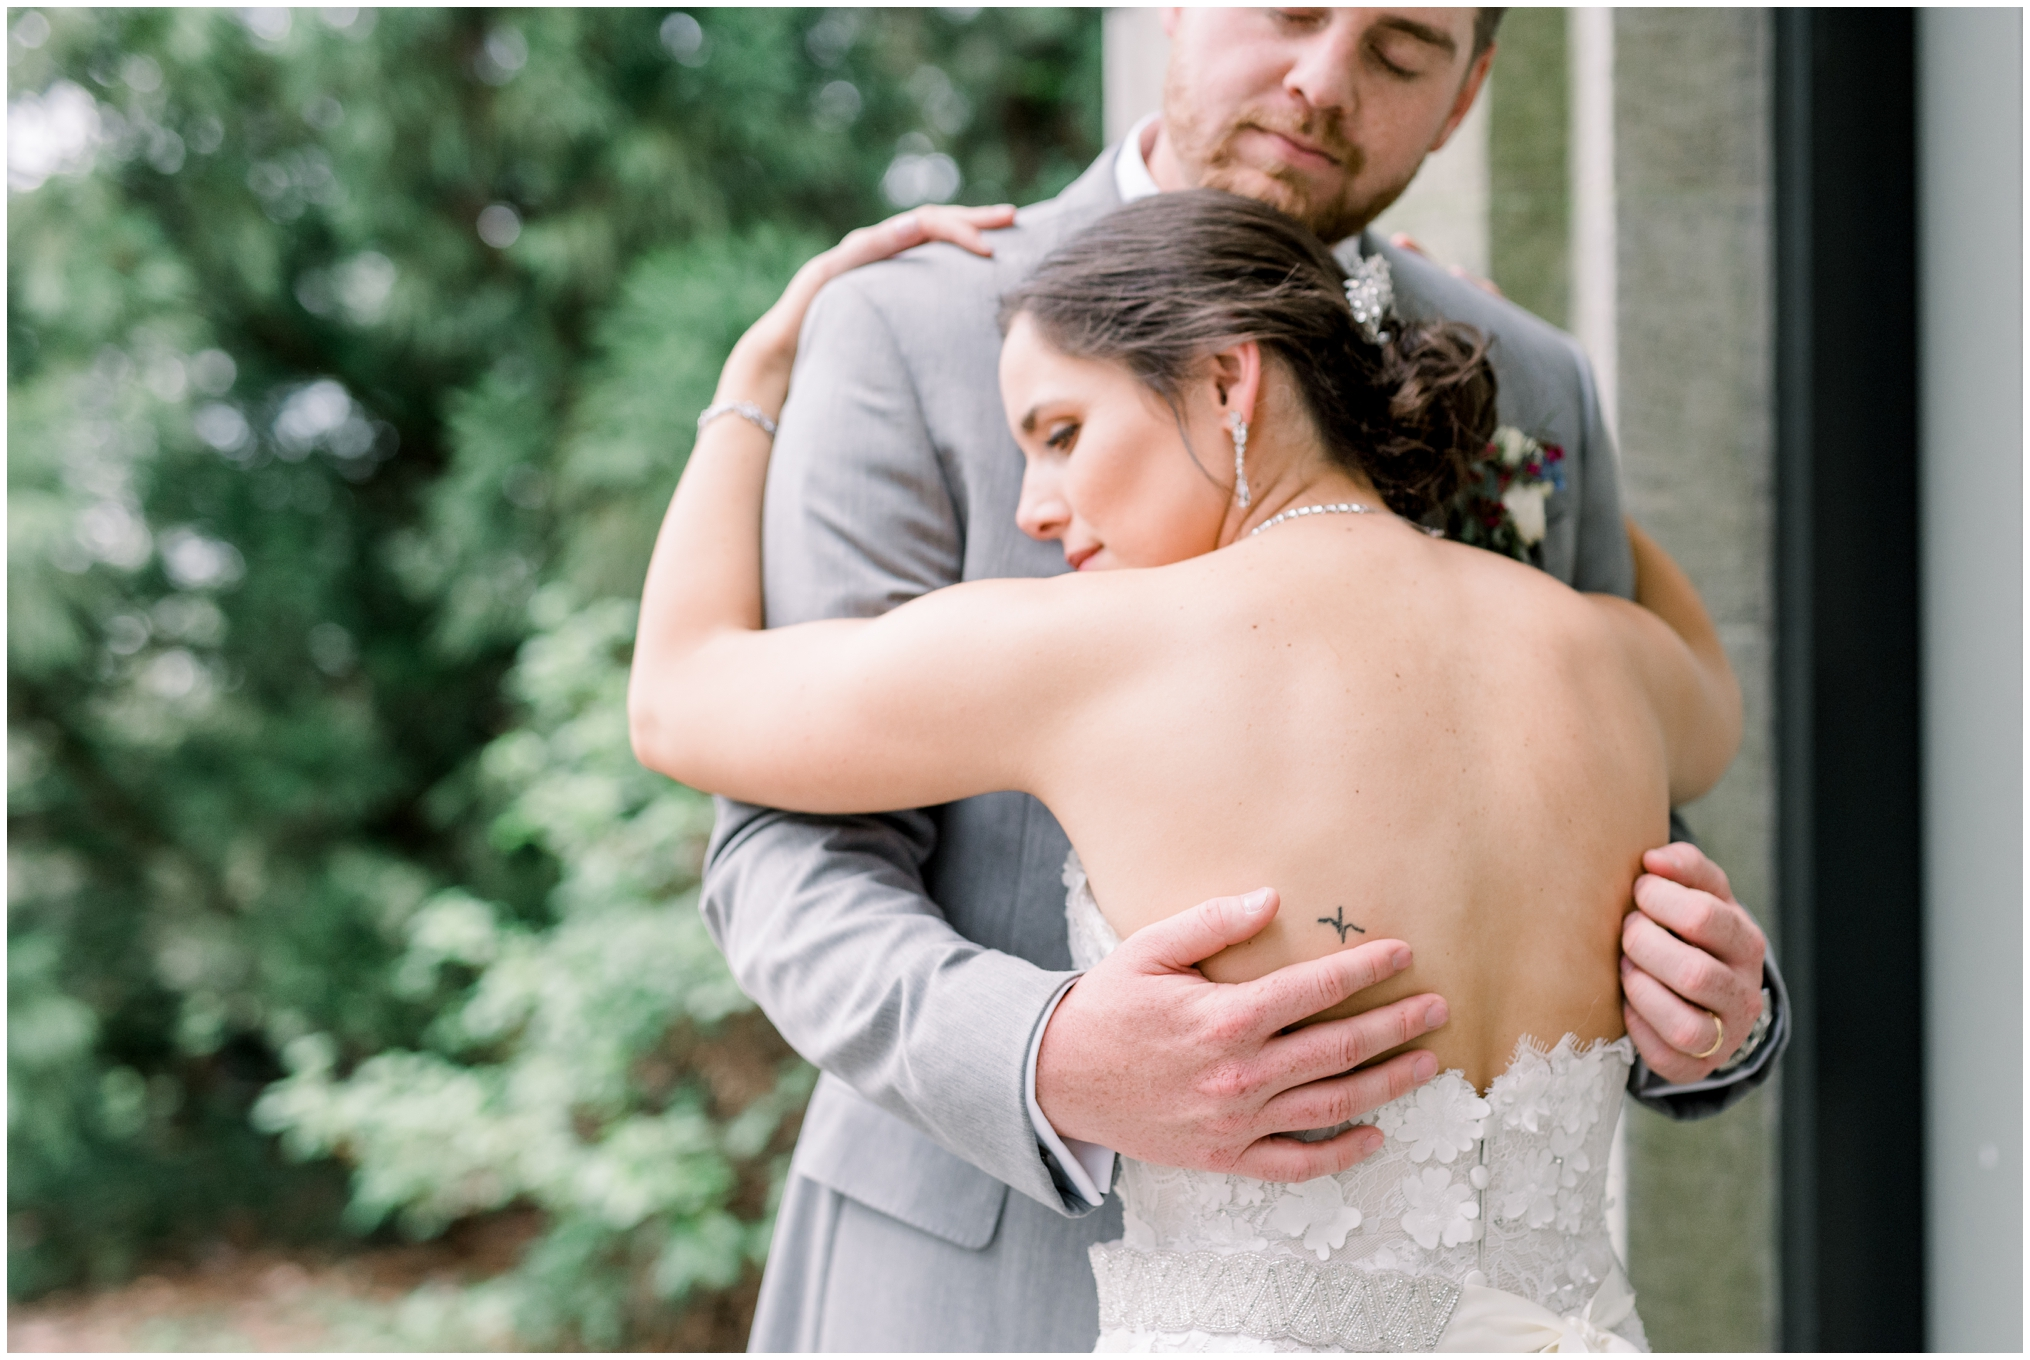 Krista Brackin Photography | April Wedding at The Carriage House at Rockwood Park_0084.jpg